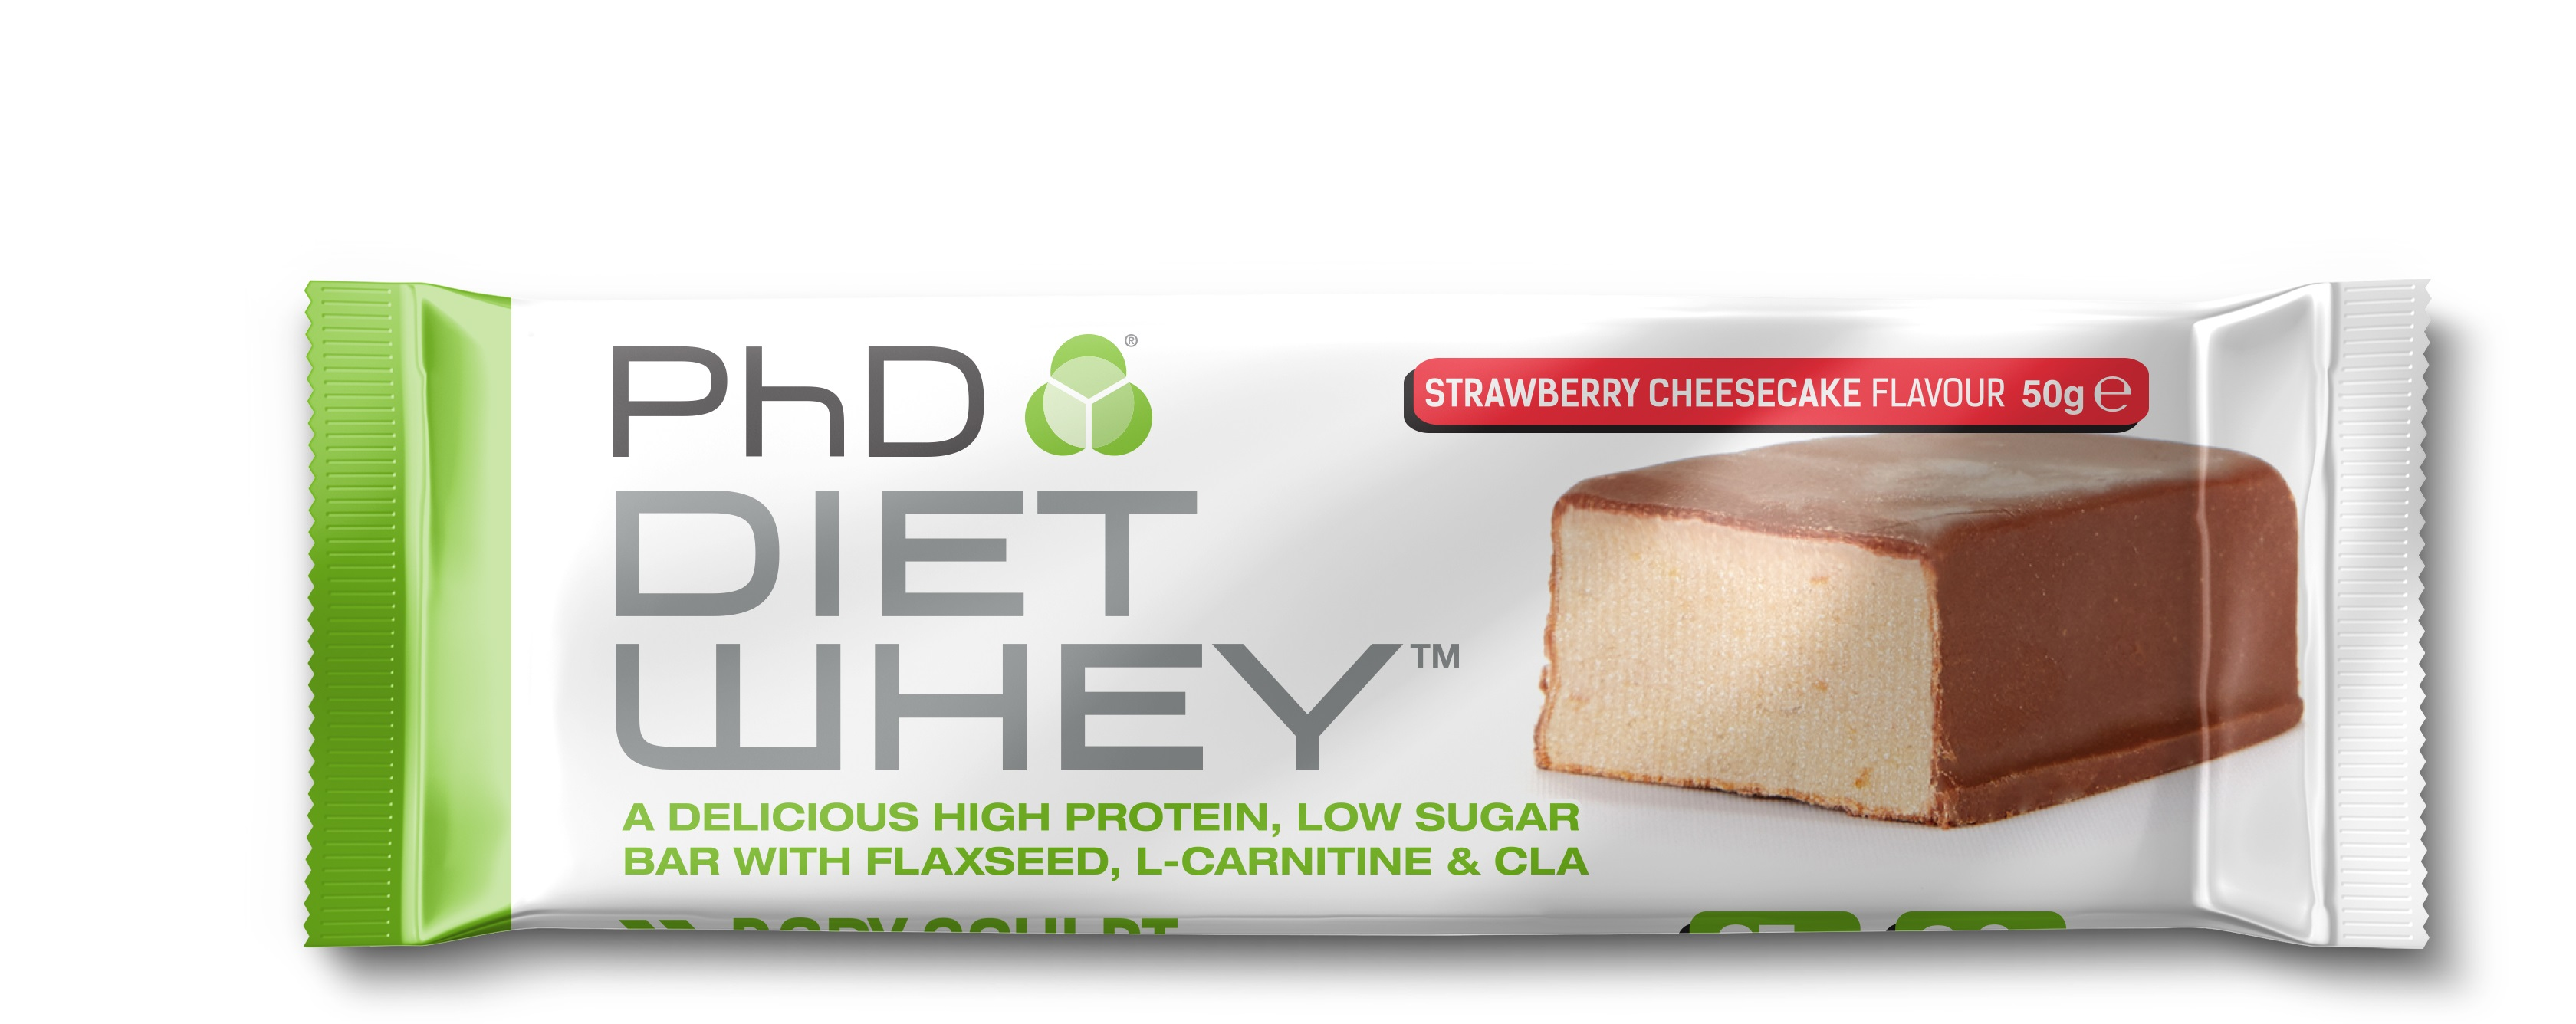 Pack a PhD Diet Whey bar on your next trip